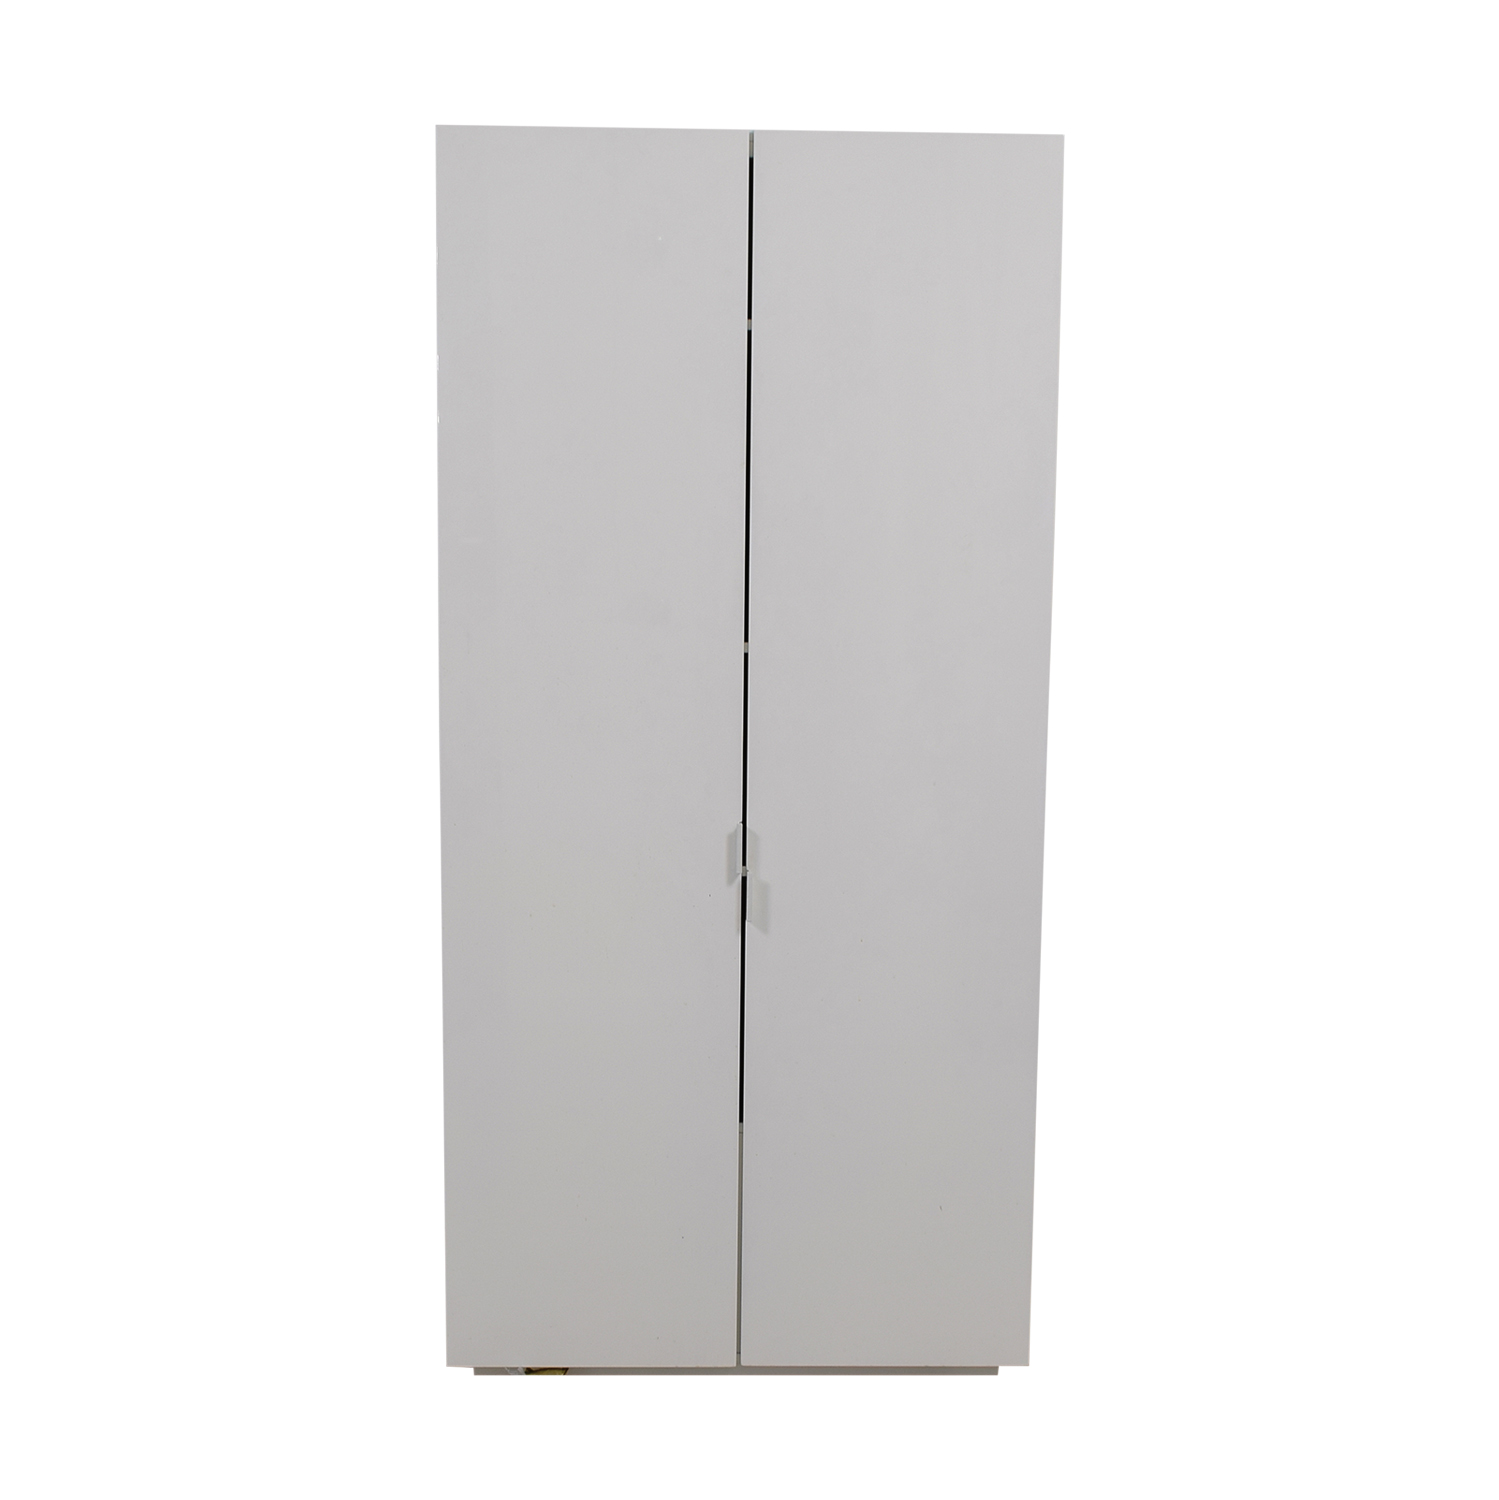 CB2 White Lacquer Wall Wardrobe with Shelves CB2